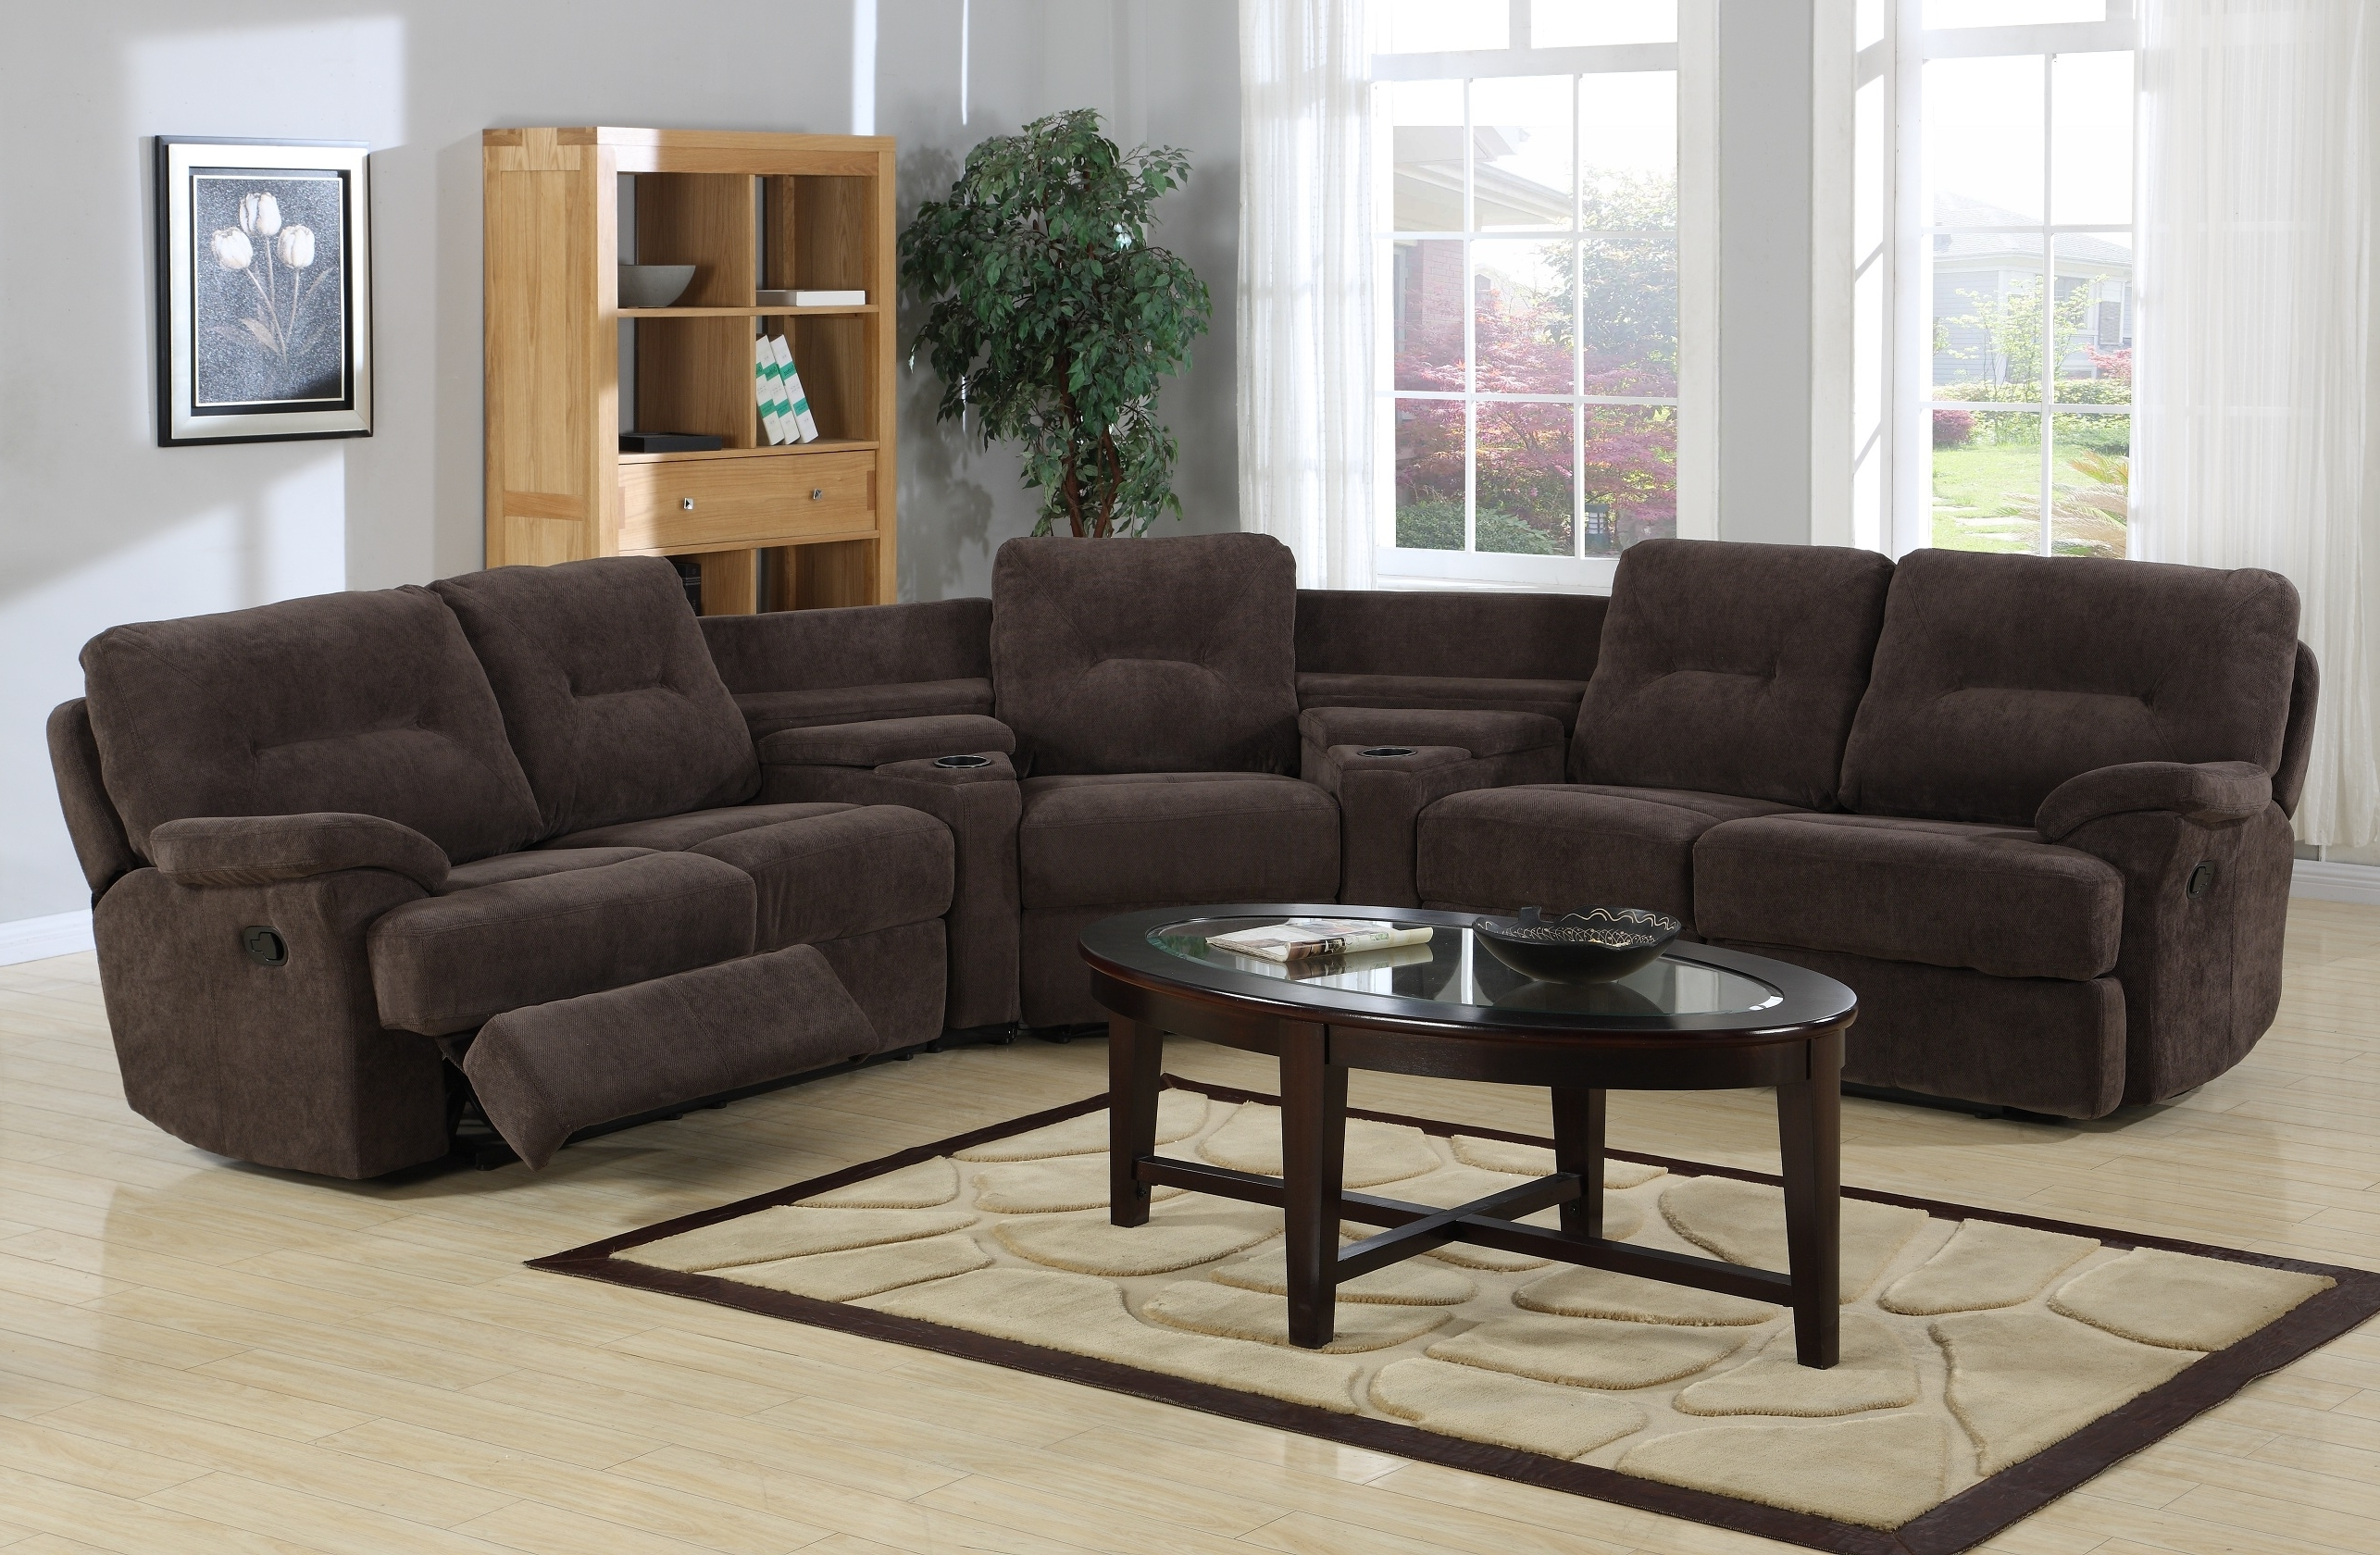 Sectional Sofa With Chaise Tags : Leather Sectional Sofa With Regarding Most Popular Curved Recliner Sofas (View 5 of 20)